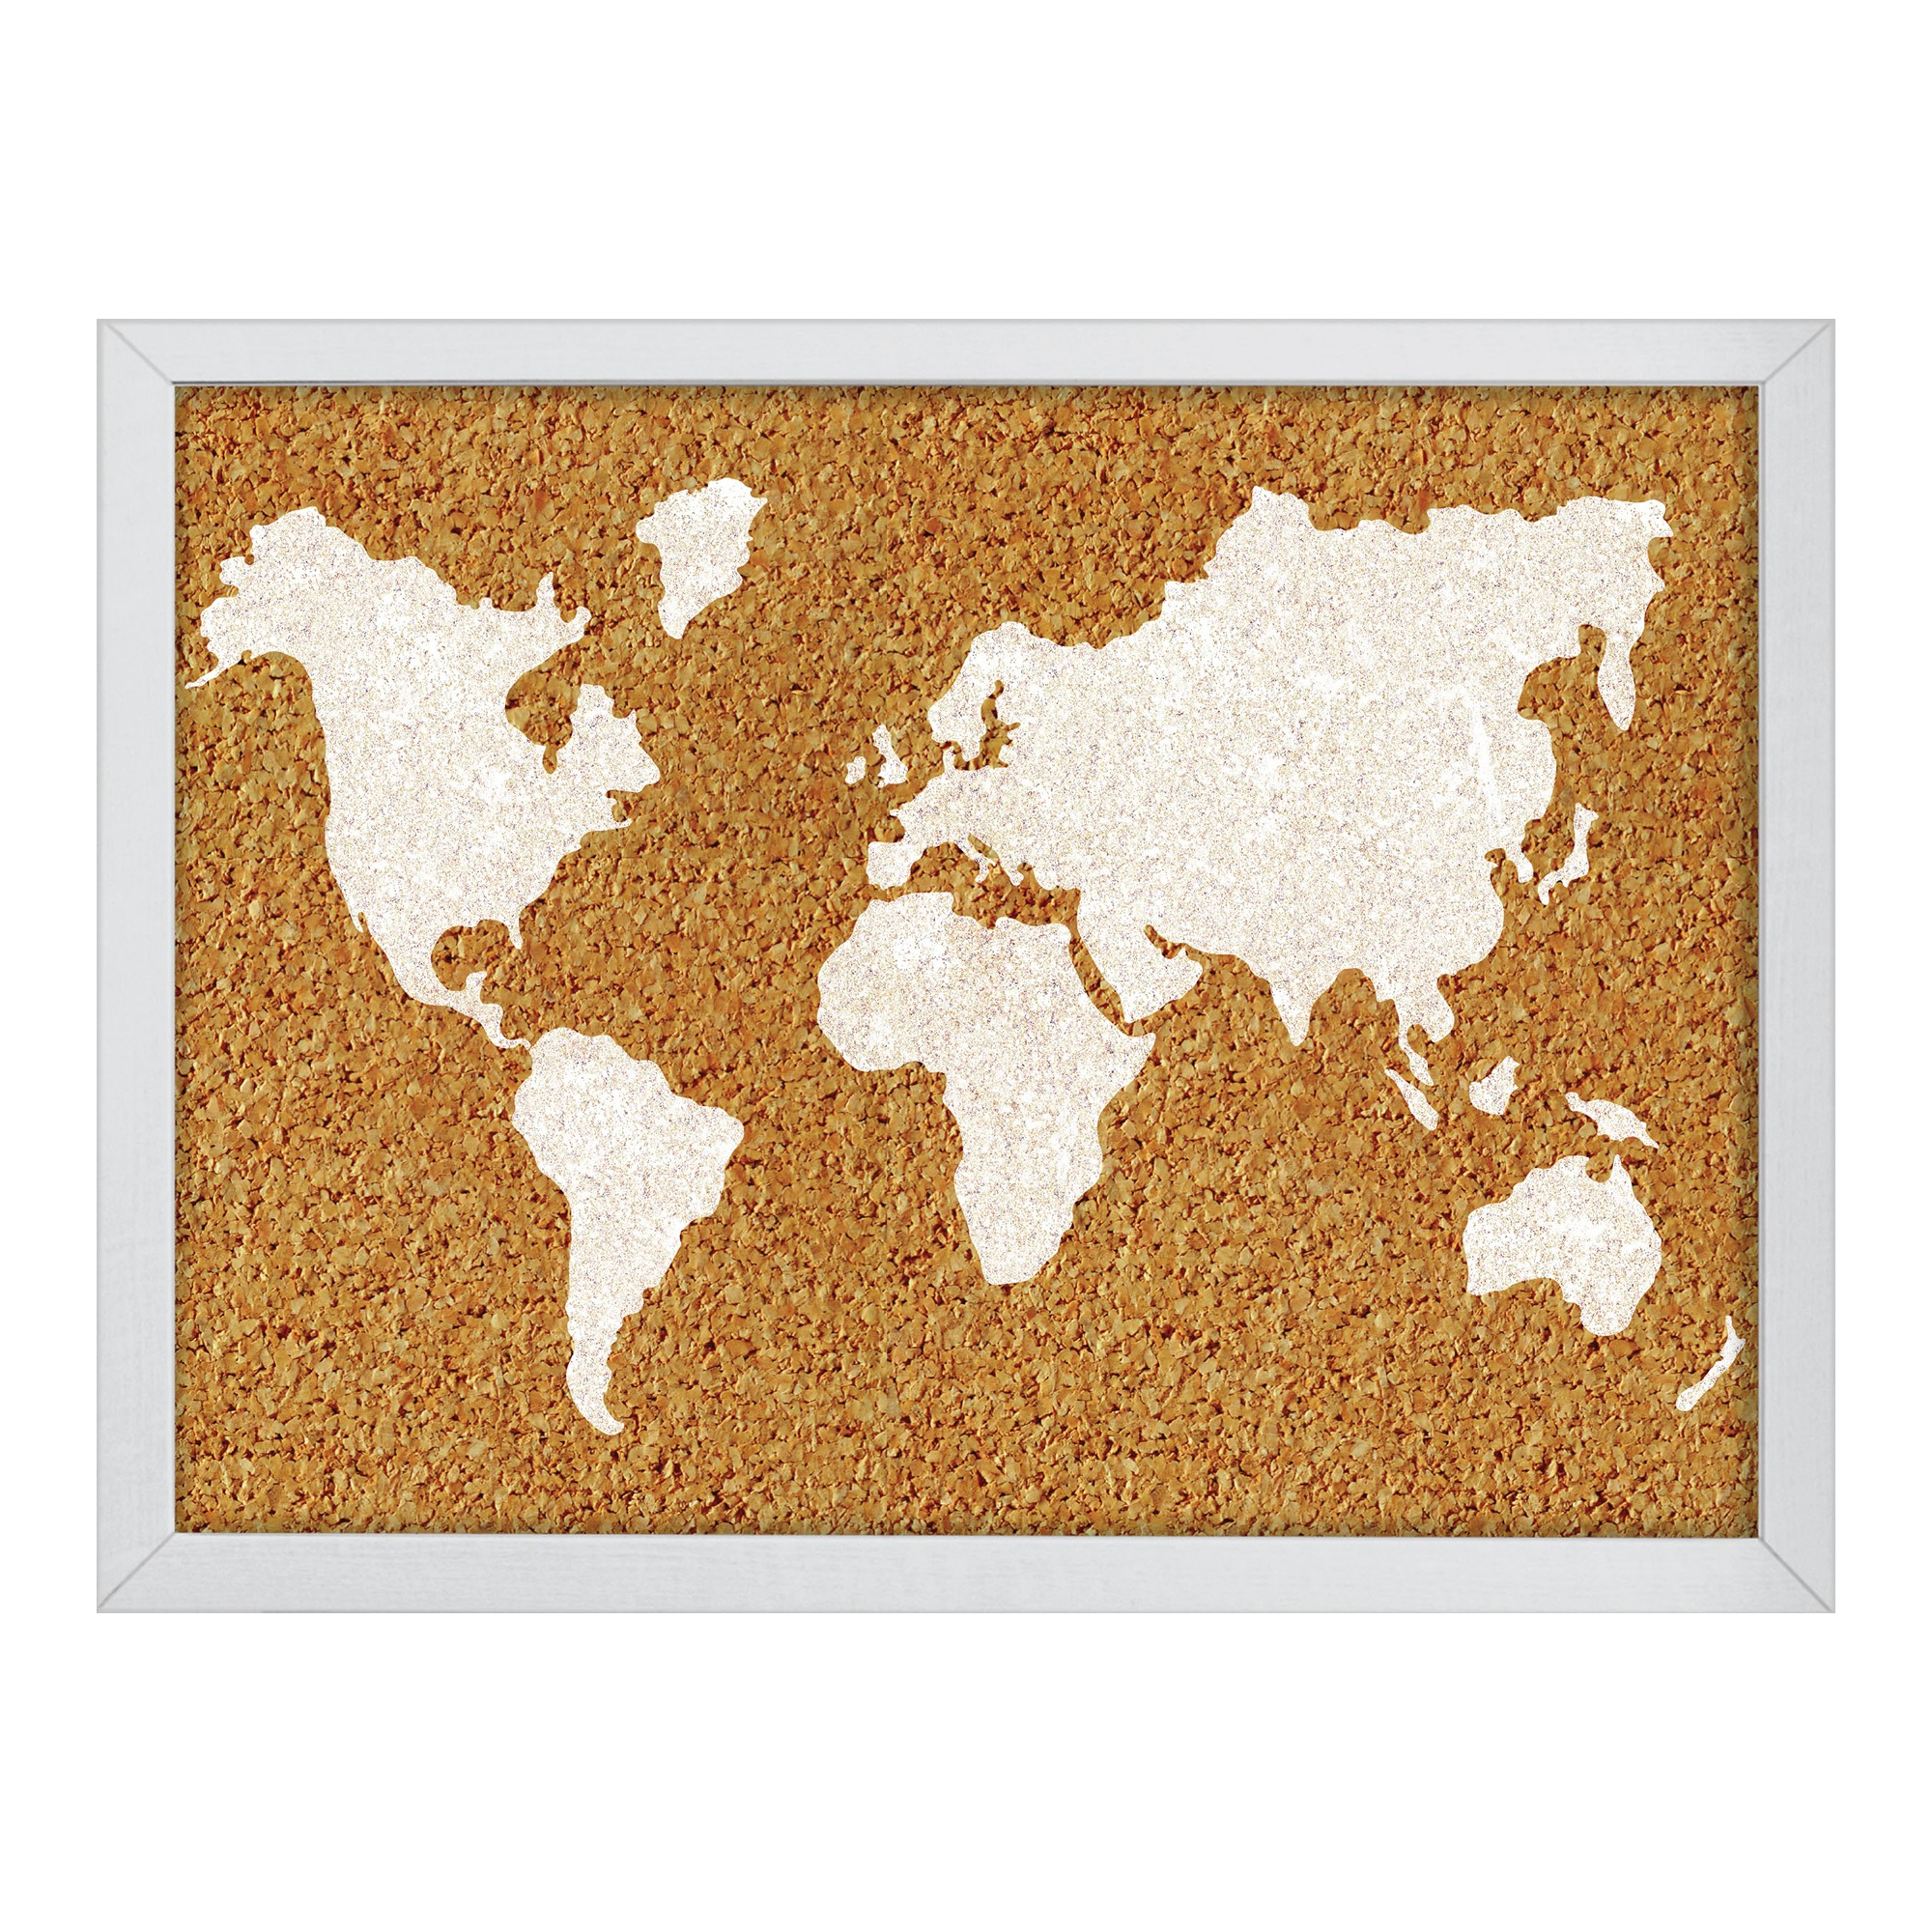 Wall pops cork bulletin board white frame 235 x 17 world map cork bulletin board white frame 235 x 17 world map gumiabroncs Images